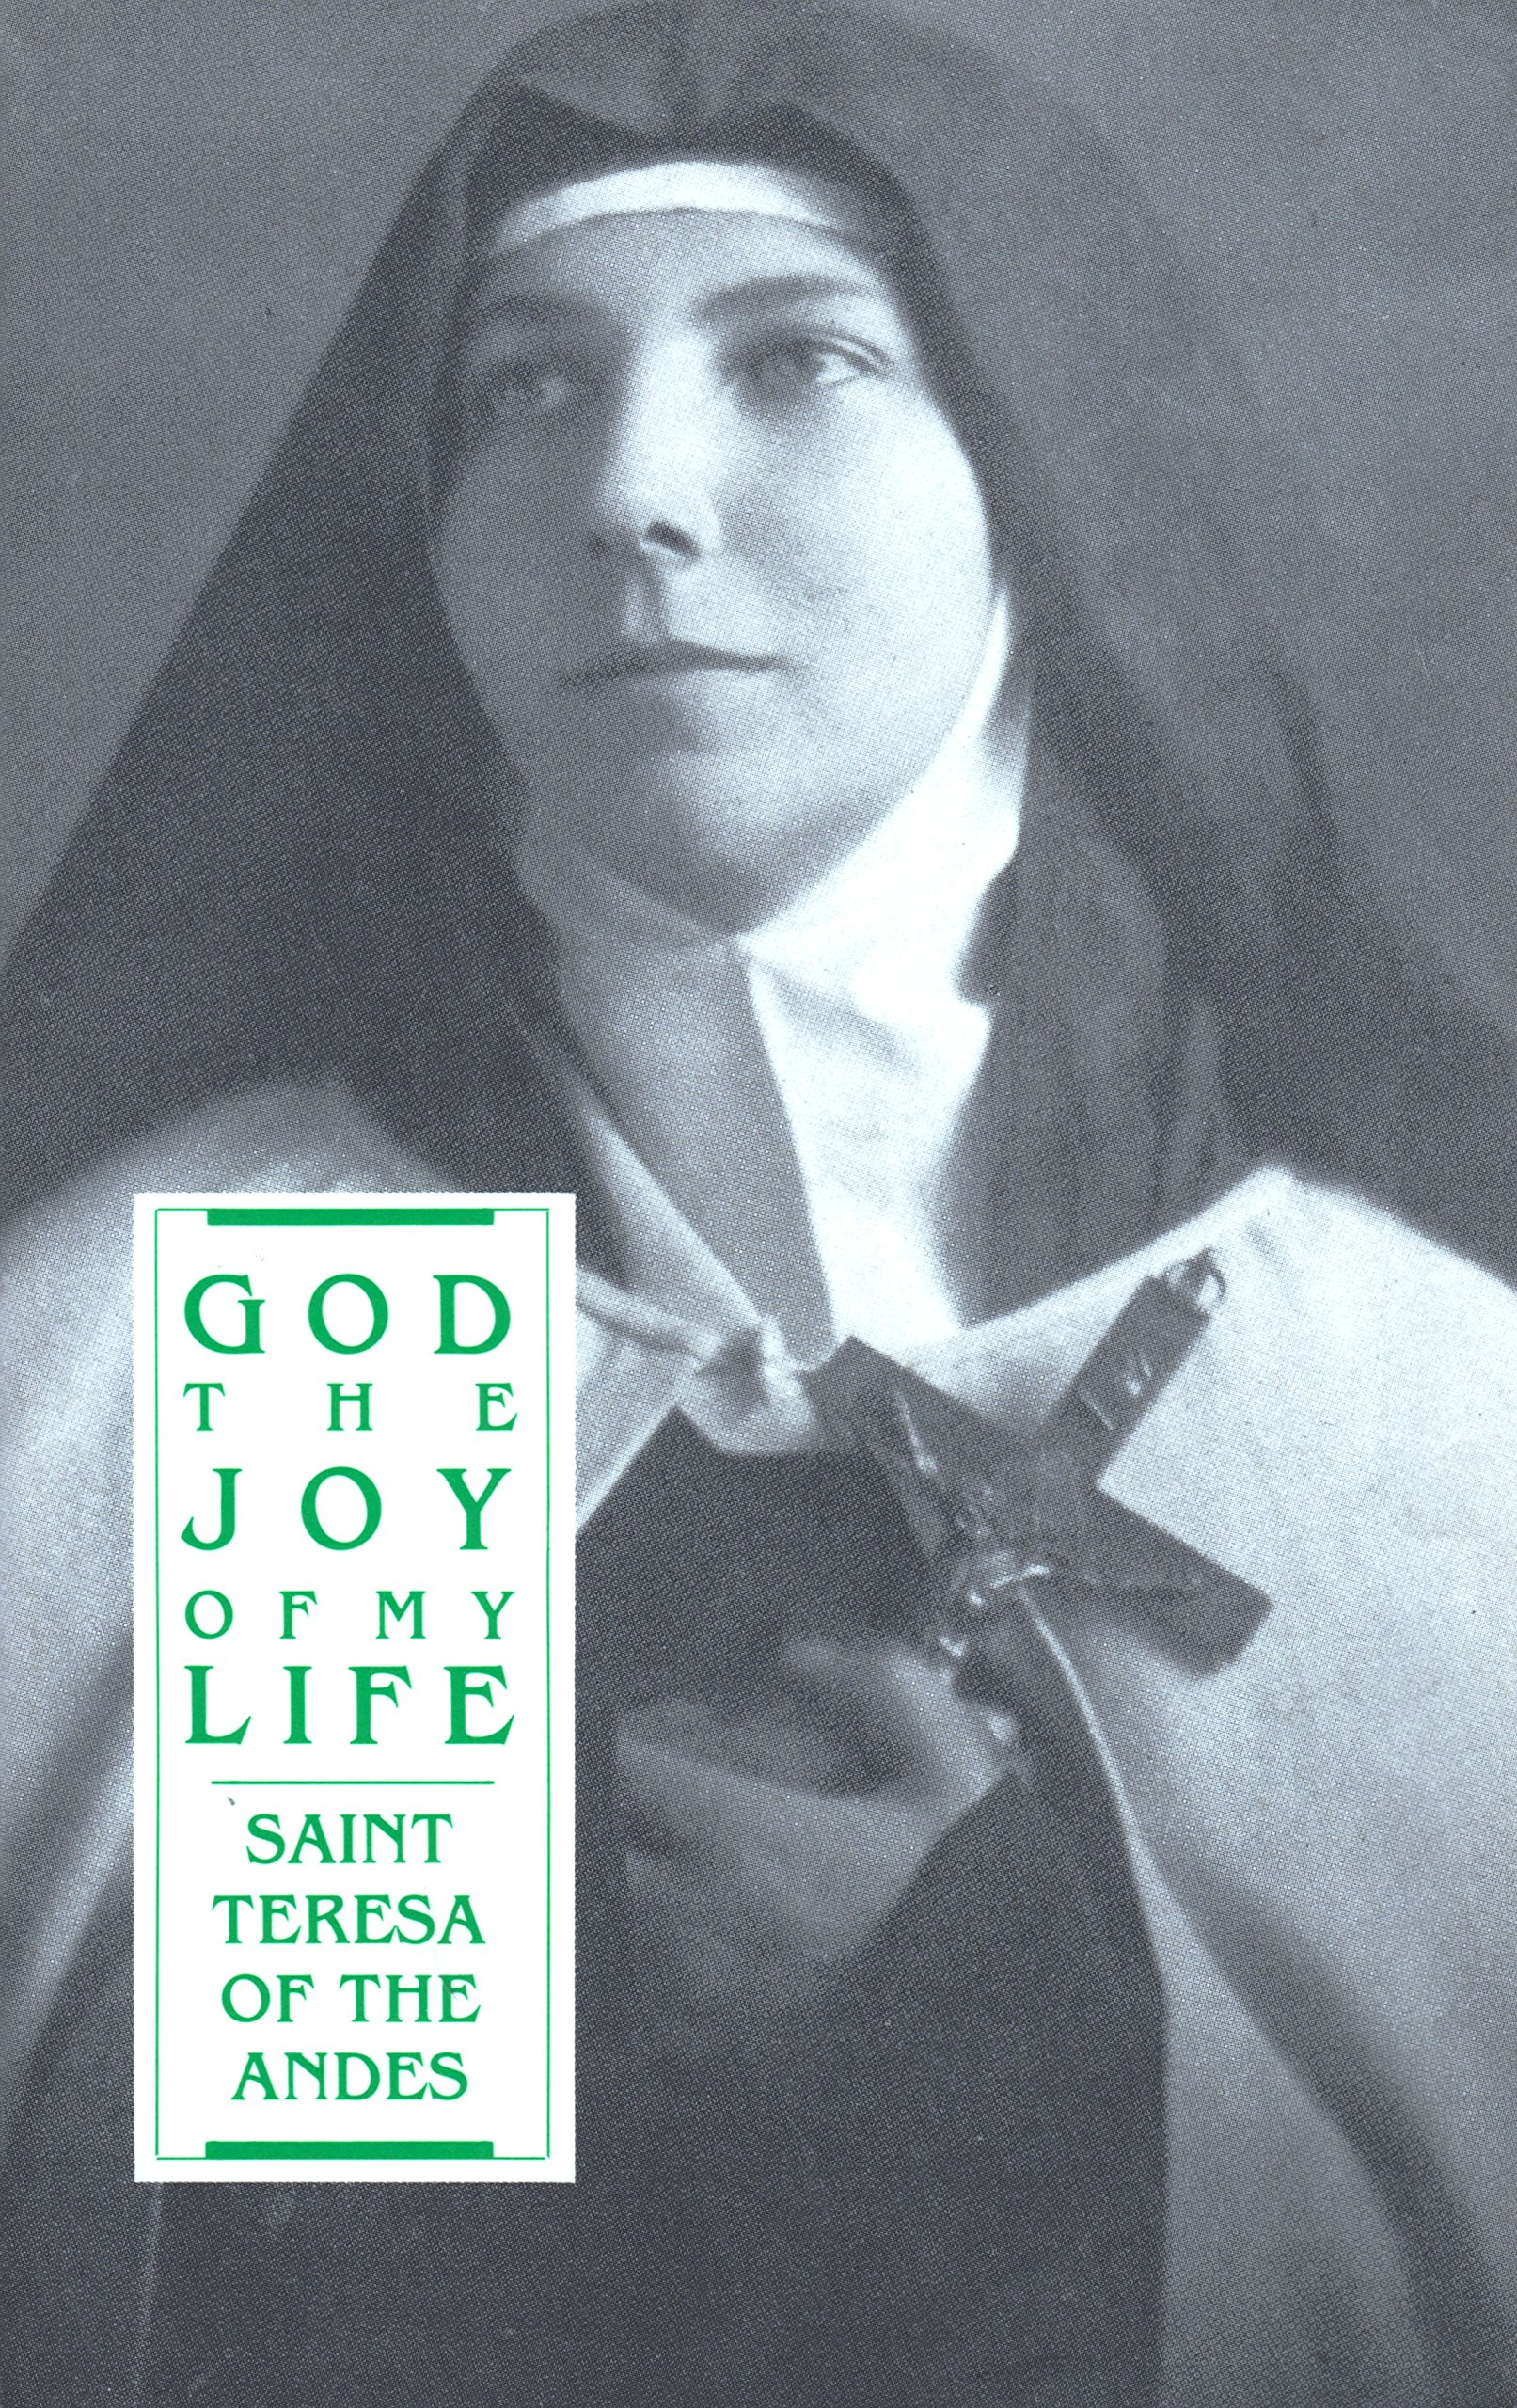 God, the Joy of My Life: A Biography of Saint Teresa of Jesus of the